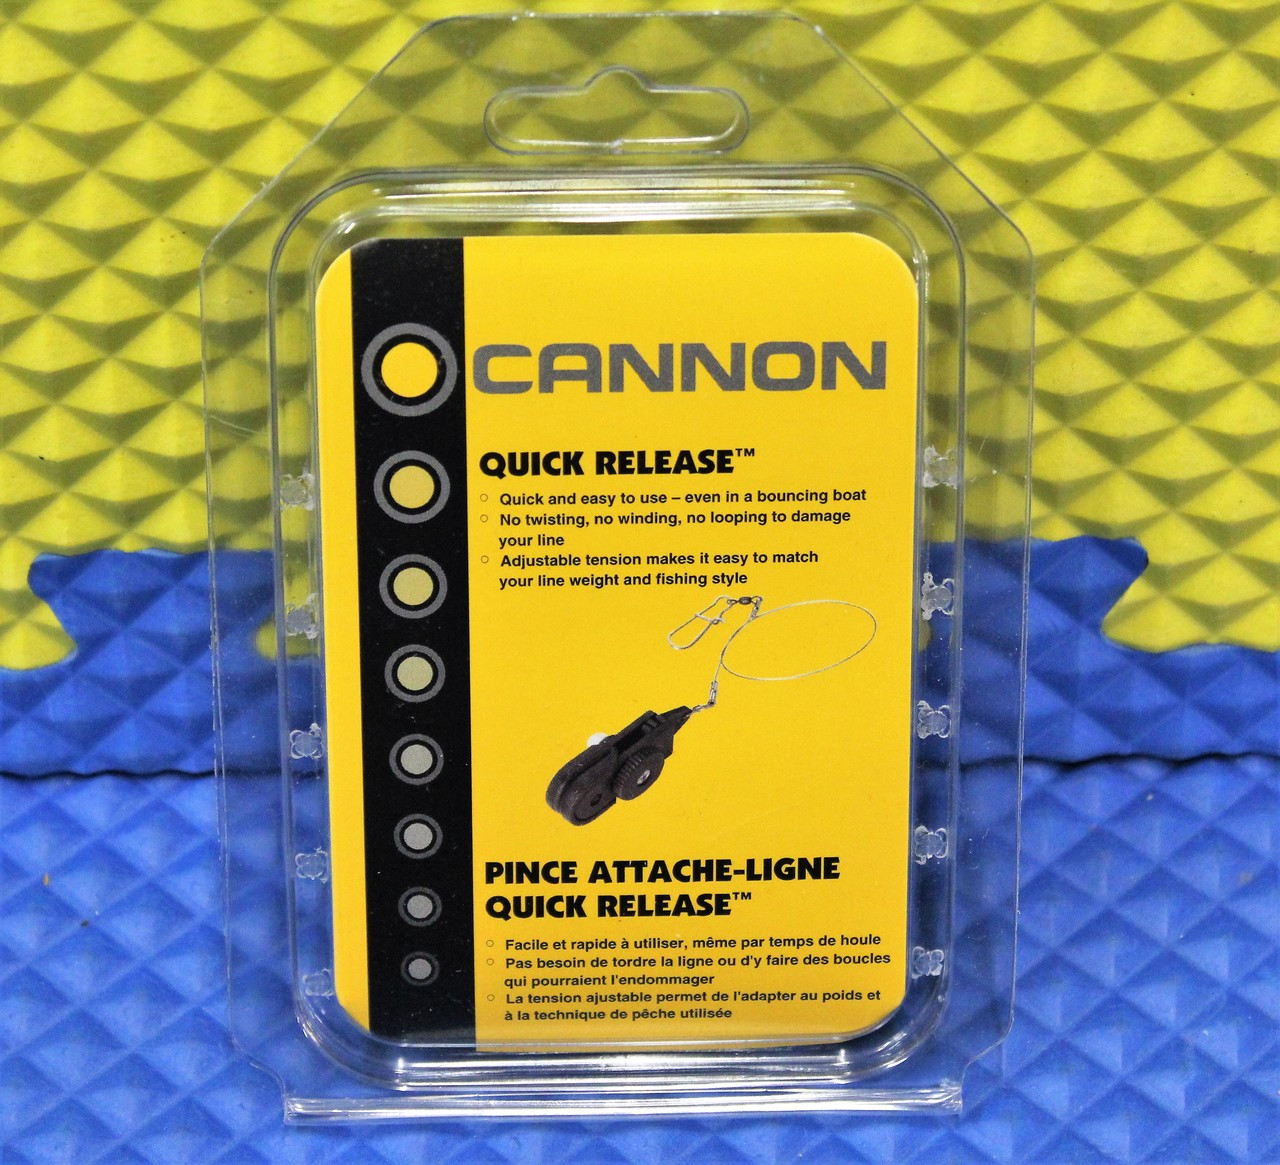 LOT OF 2 CANNON DOWNRIGGER ADJUSTABLE LINE RELEASES UNI-LINE BRAND NEW 2250009